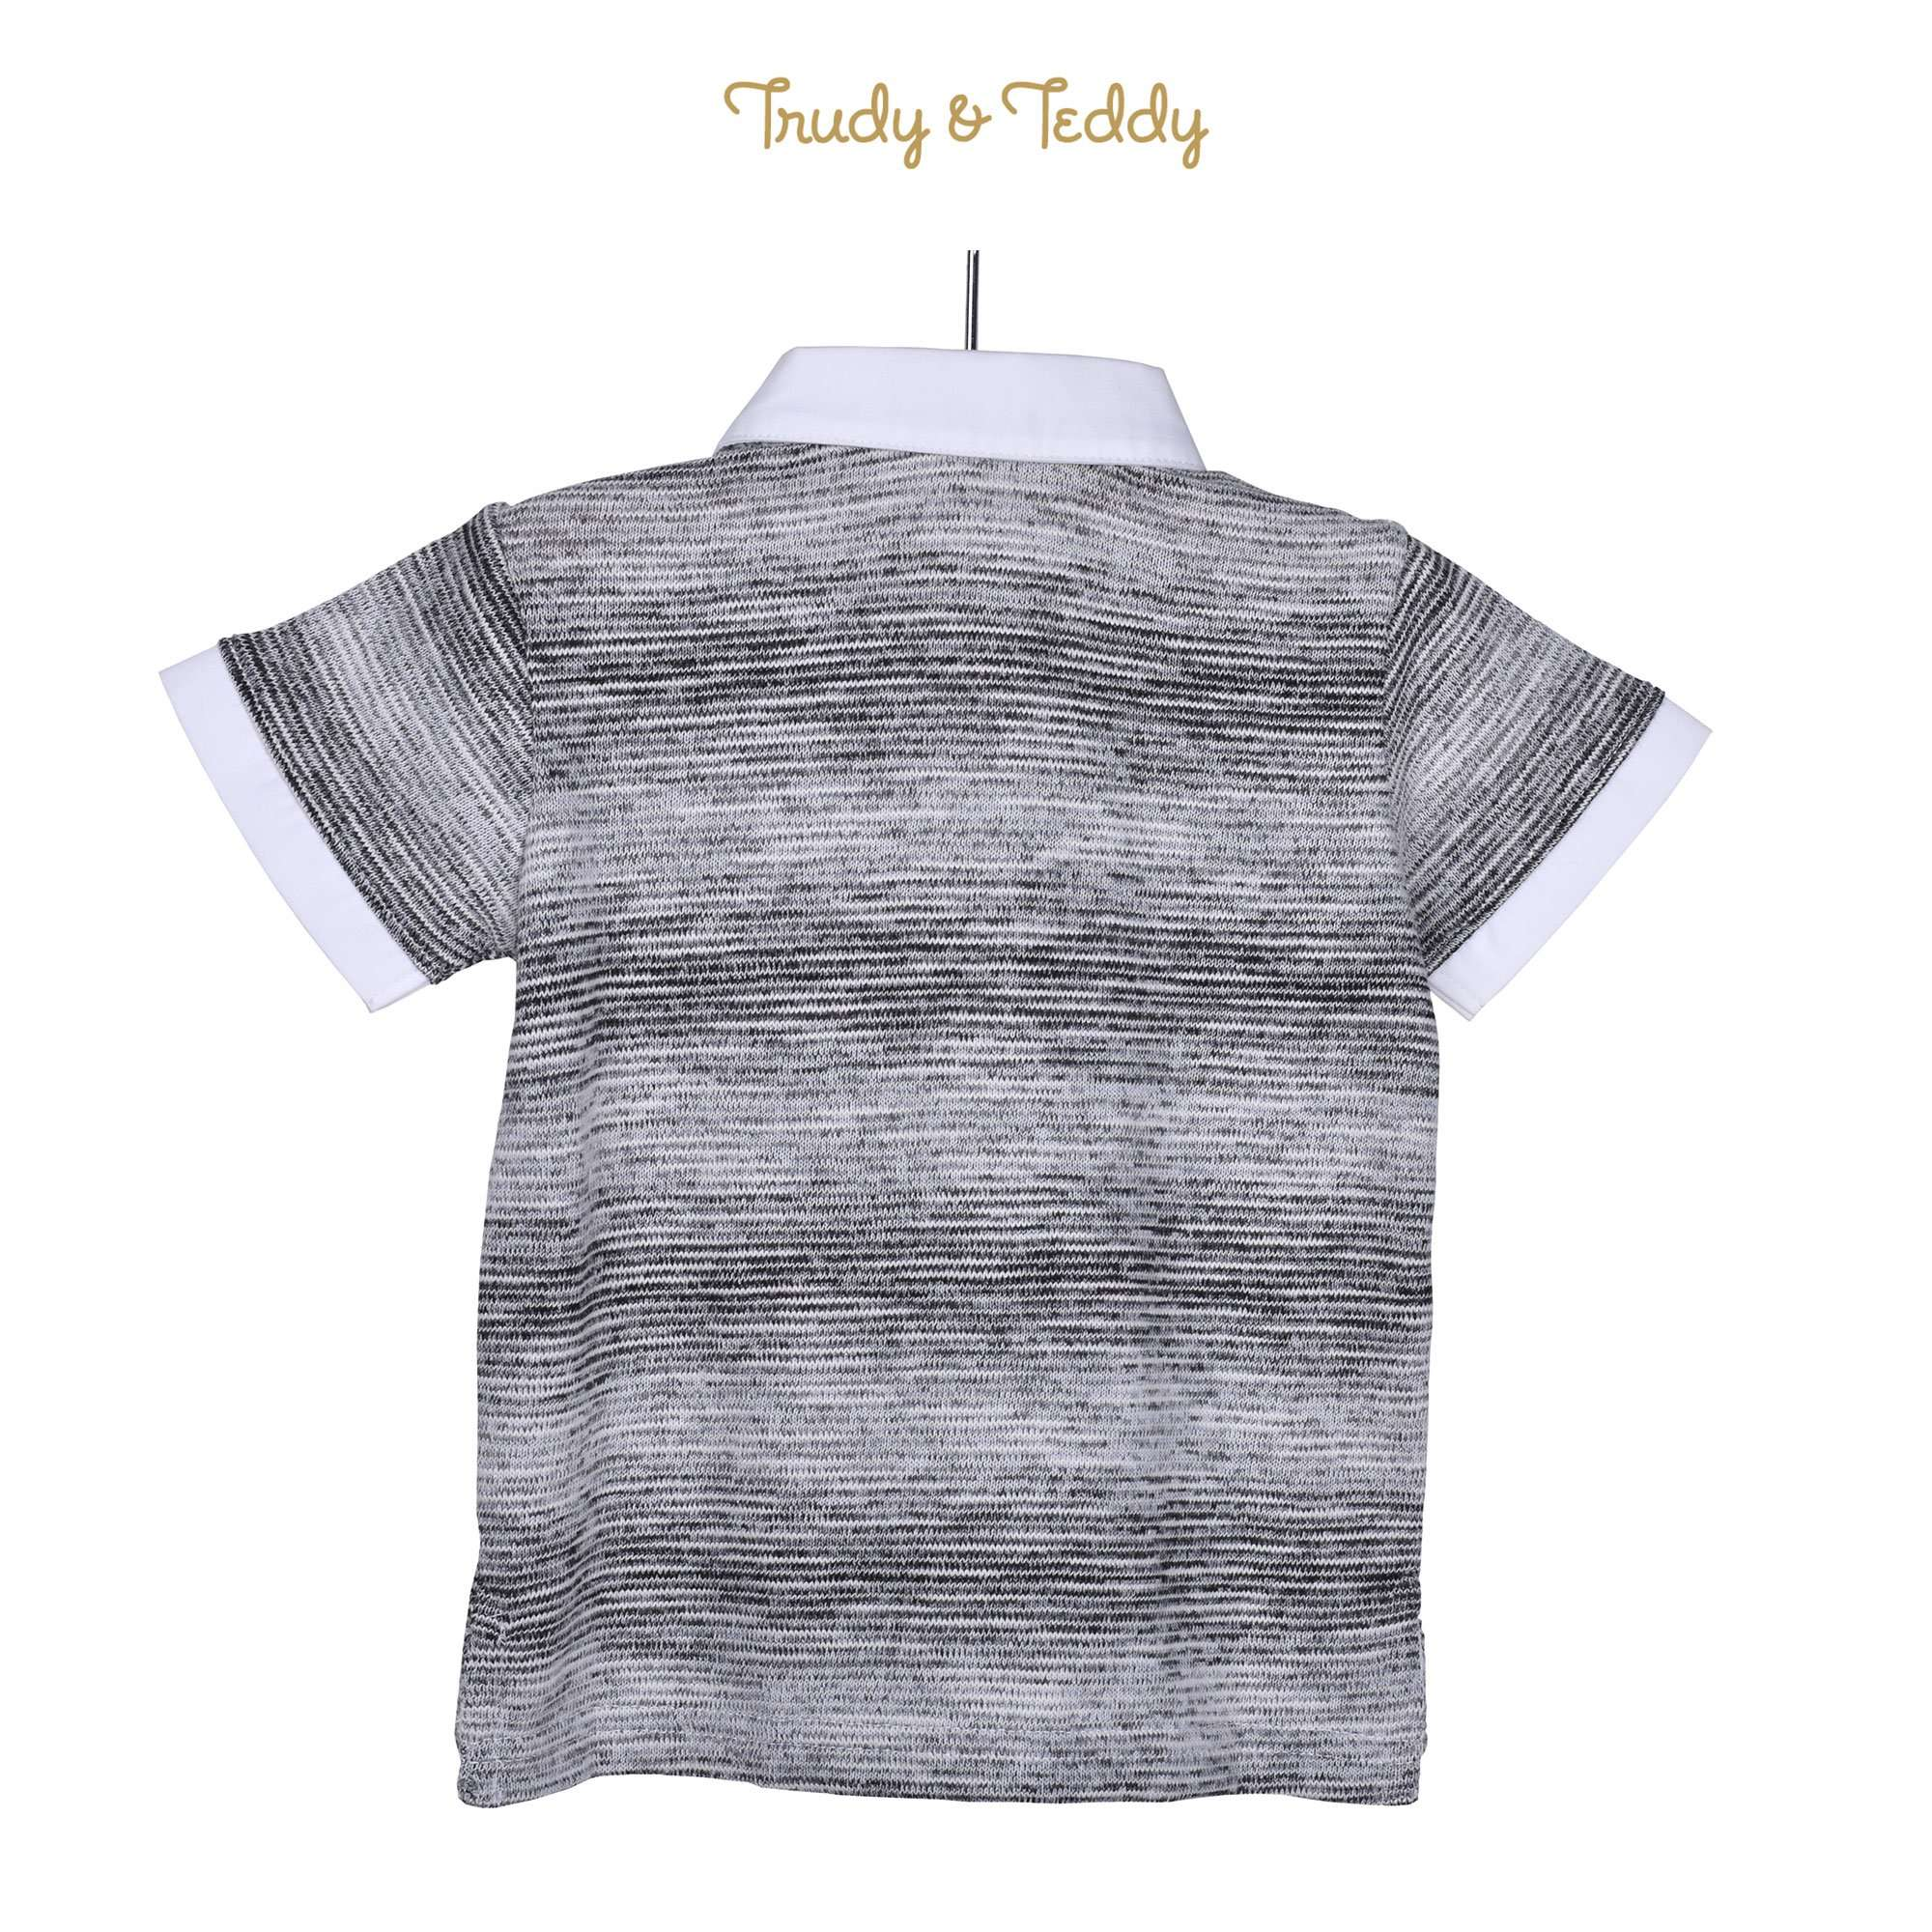 Trudy & Teddy Toddler Boy Knit Short Sleeve Collar Tee- 815165-121 : Buy Trudy & Teddy online at CMG.MY